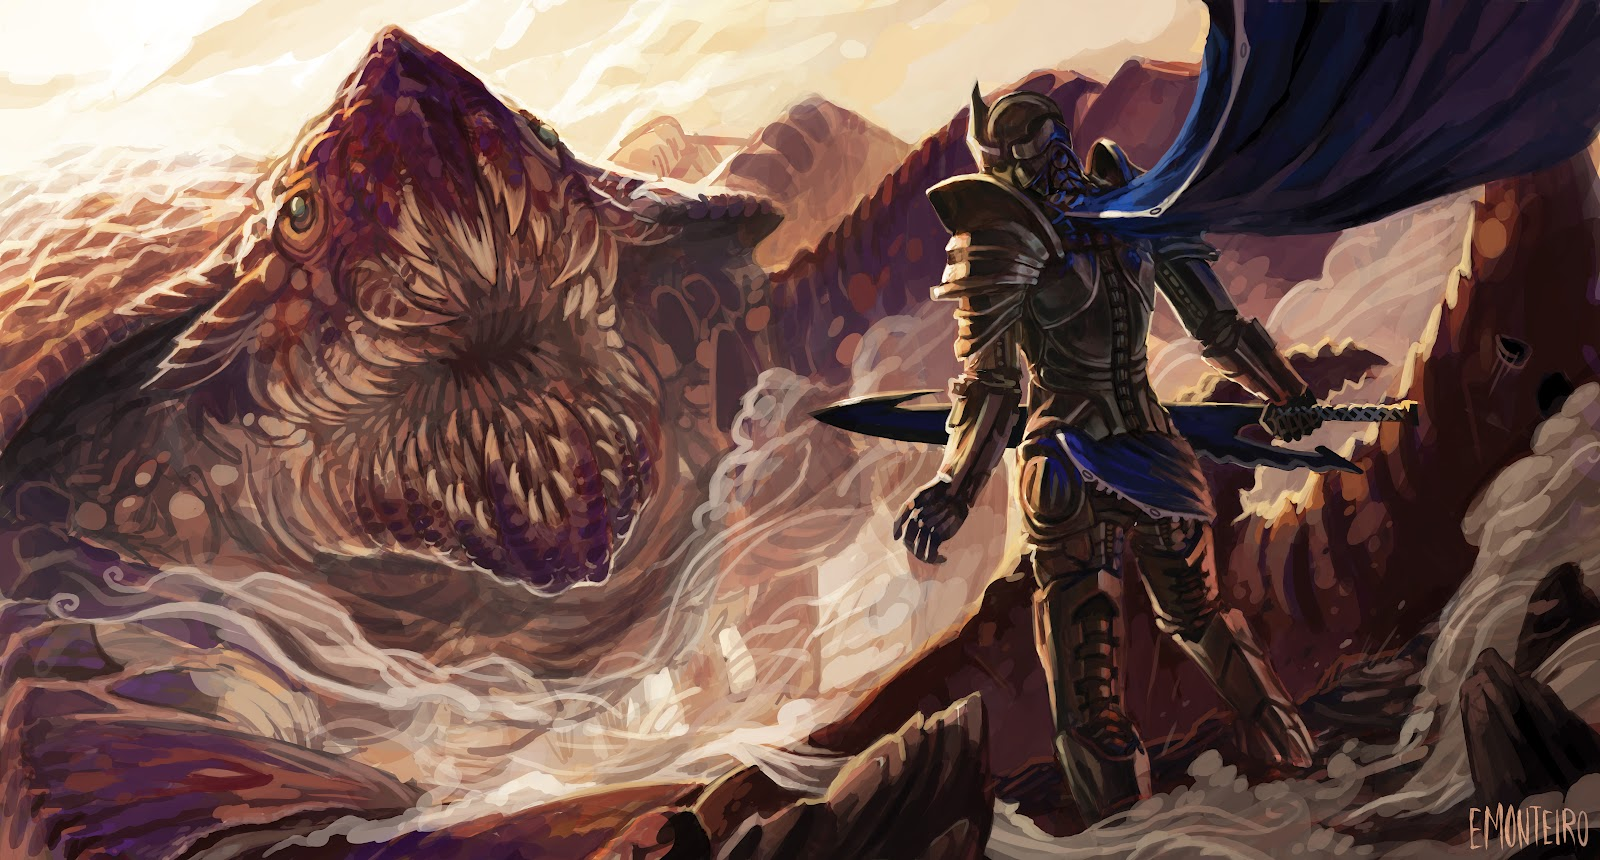 Chasmfiend | Stormlight Archive Wiki | FANDOM powered by Wikia